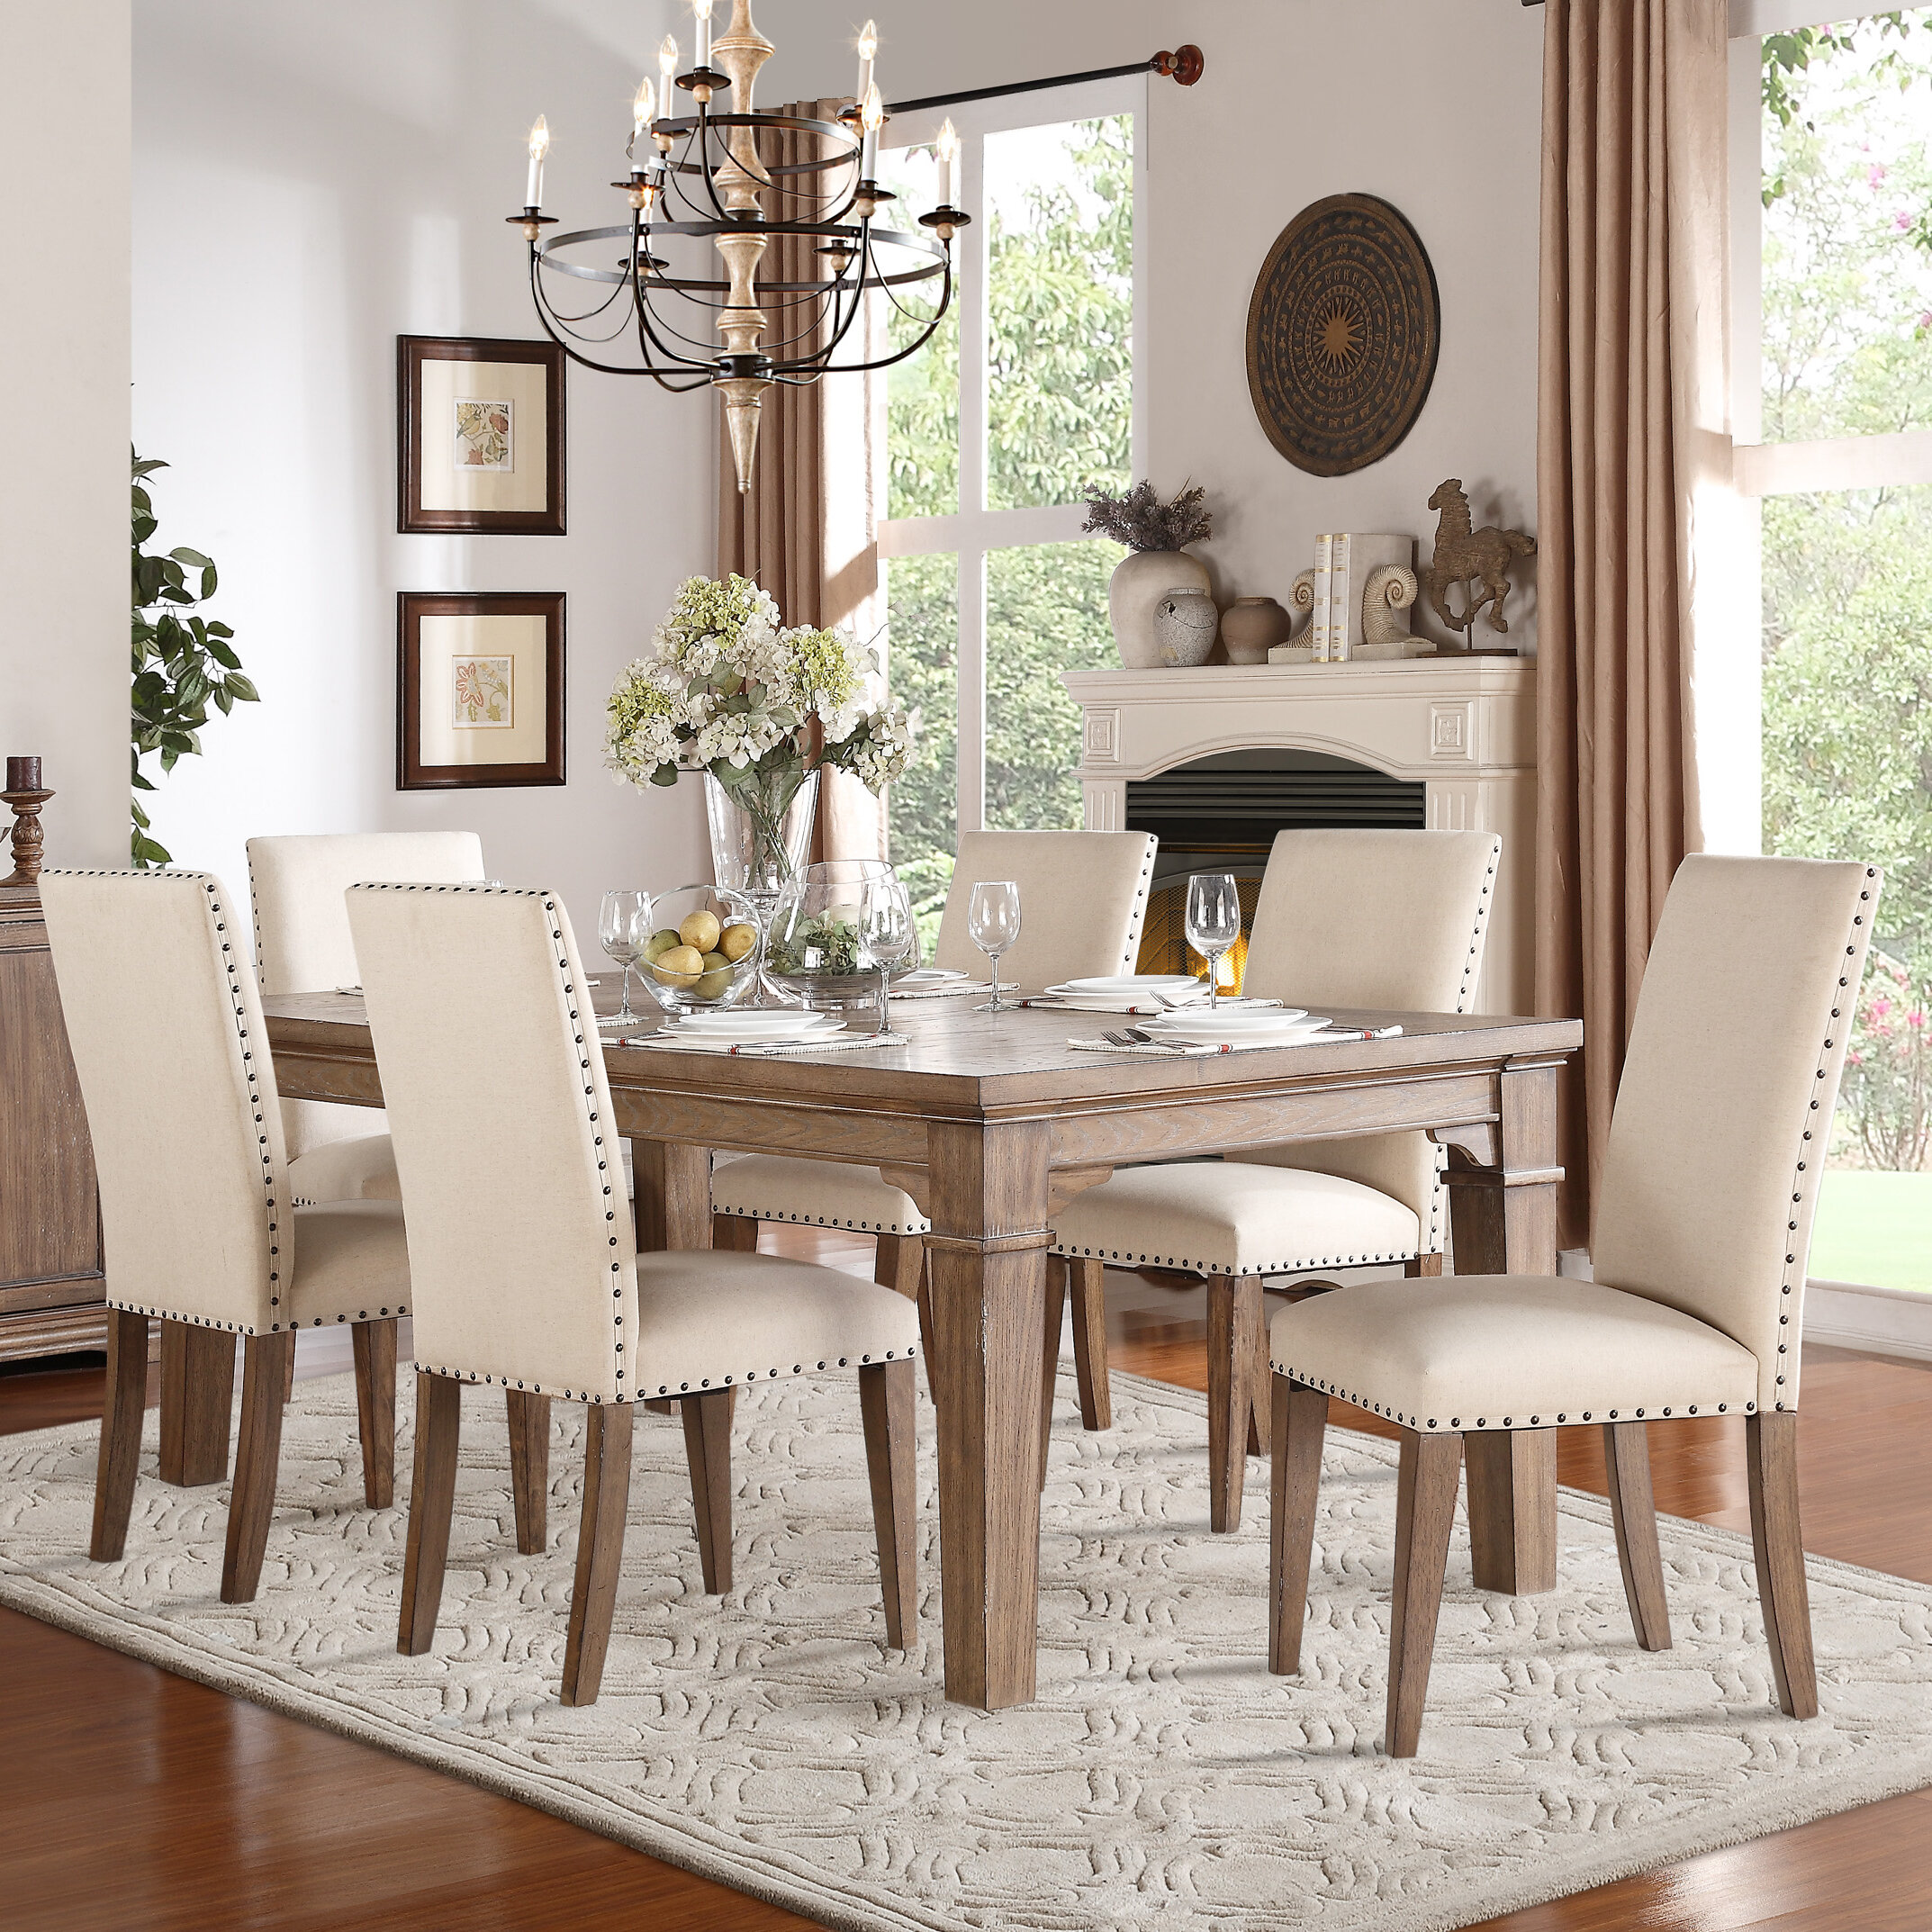 Phenomenal Wilmington 7 Piece Dining Set Home Interior And Landscaping Palasignezvosmurscom